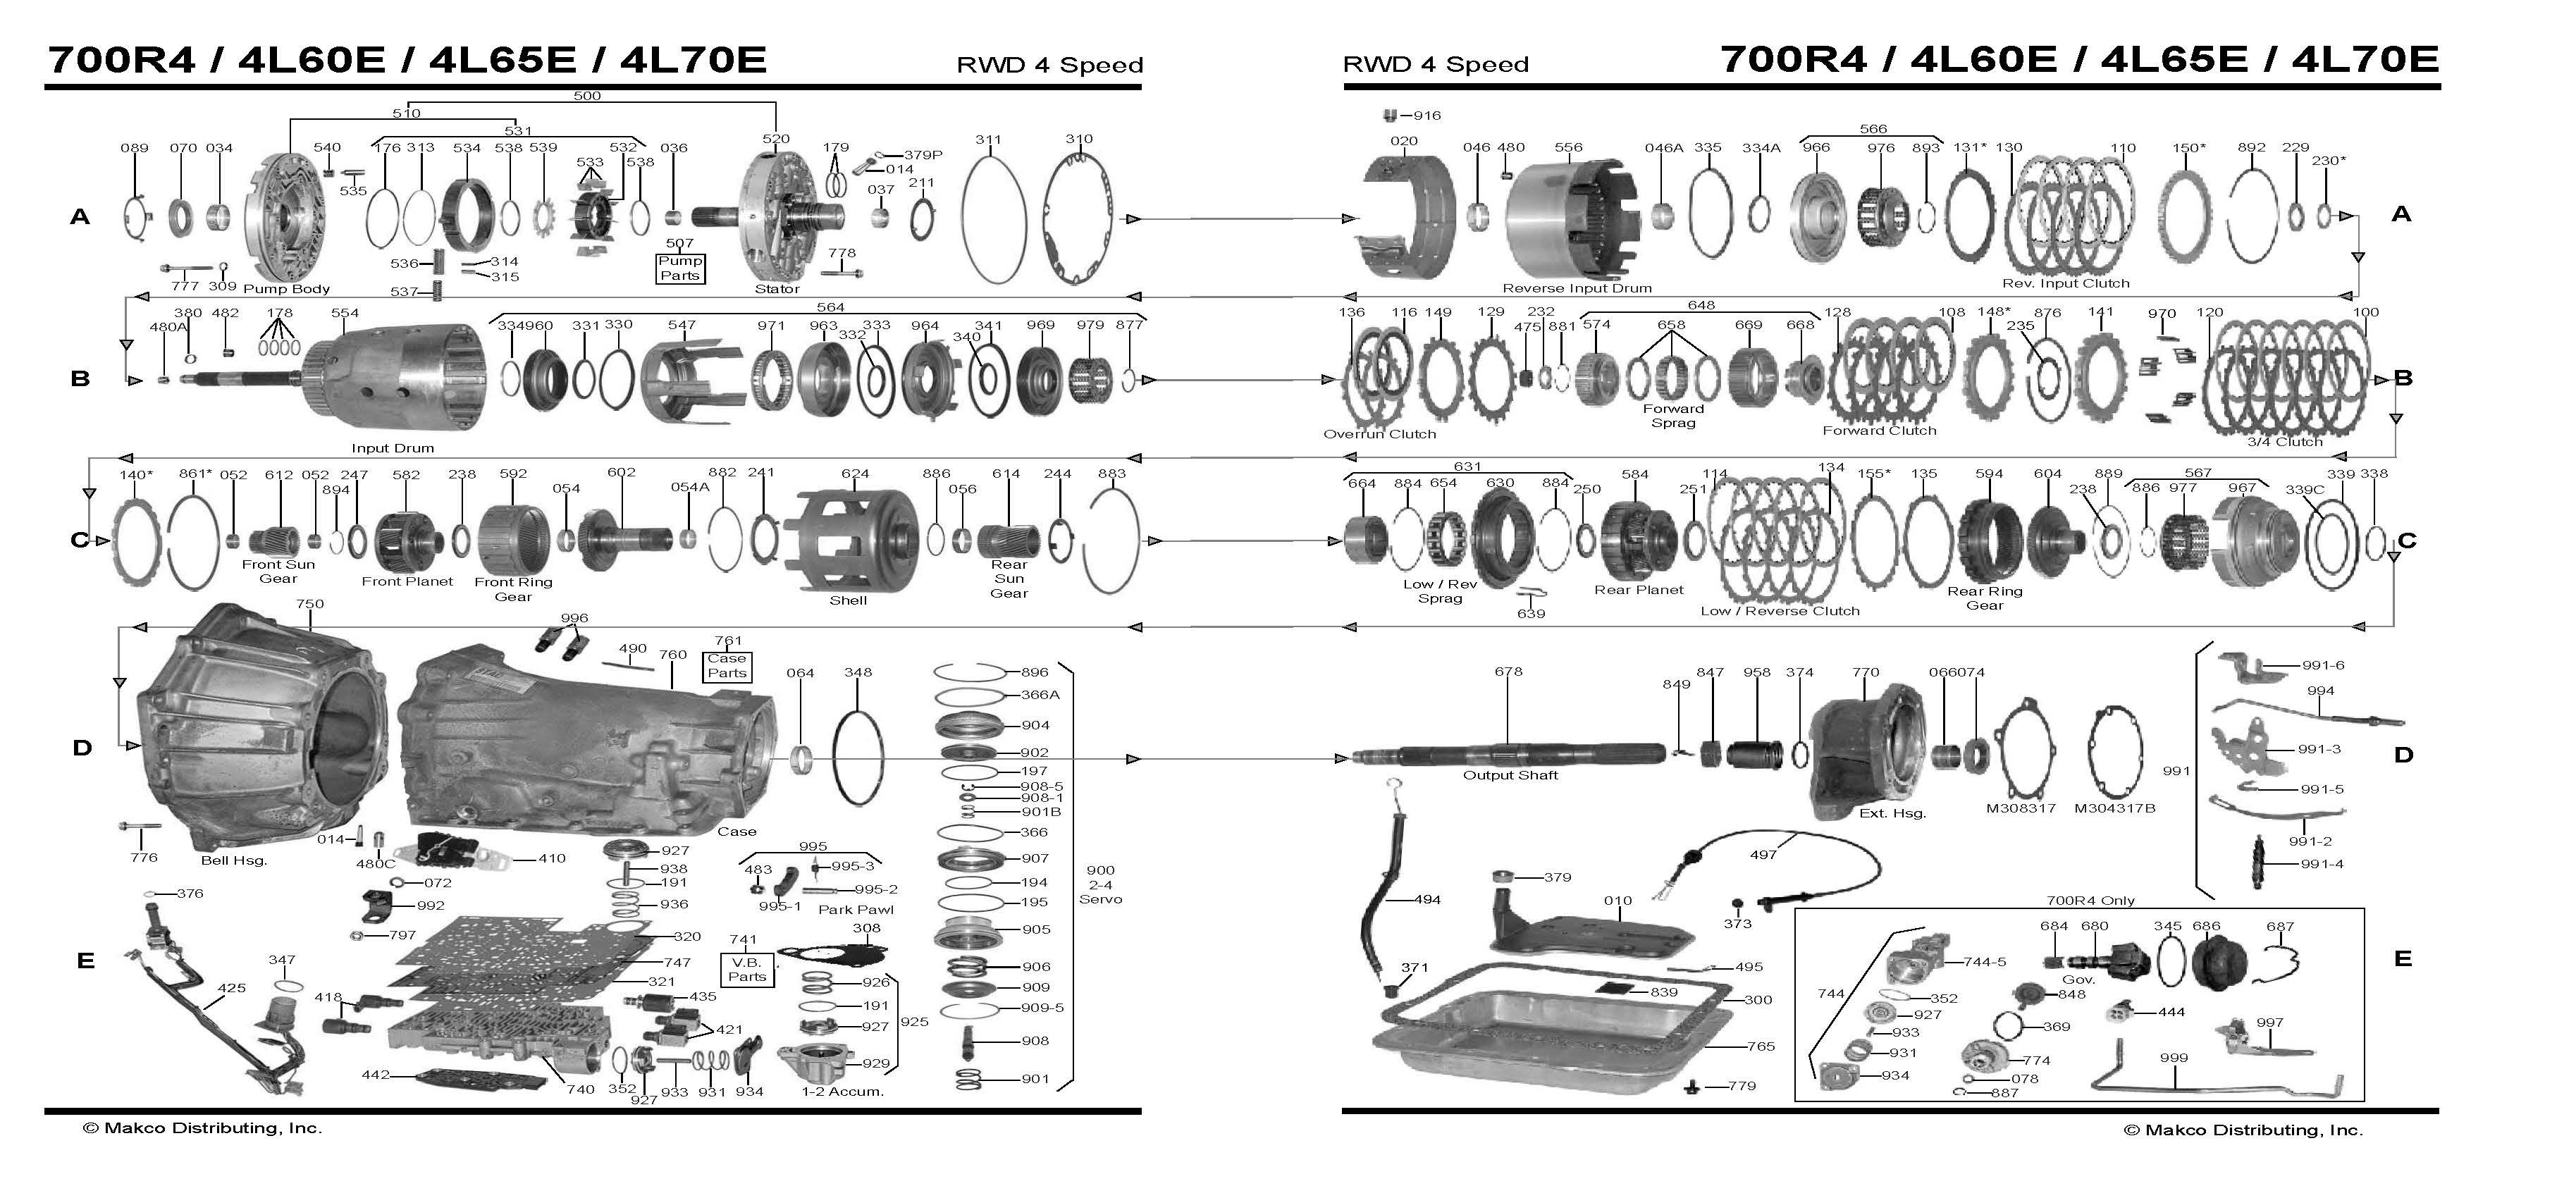 700r4 4x4 transmission diagram mallory ignition wiring 4l60e auto trans chart